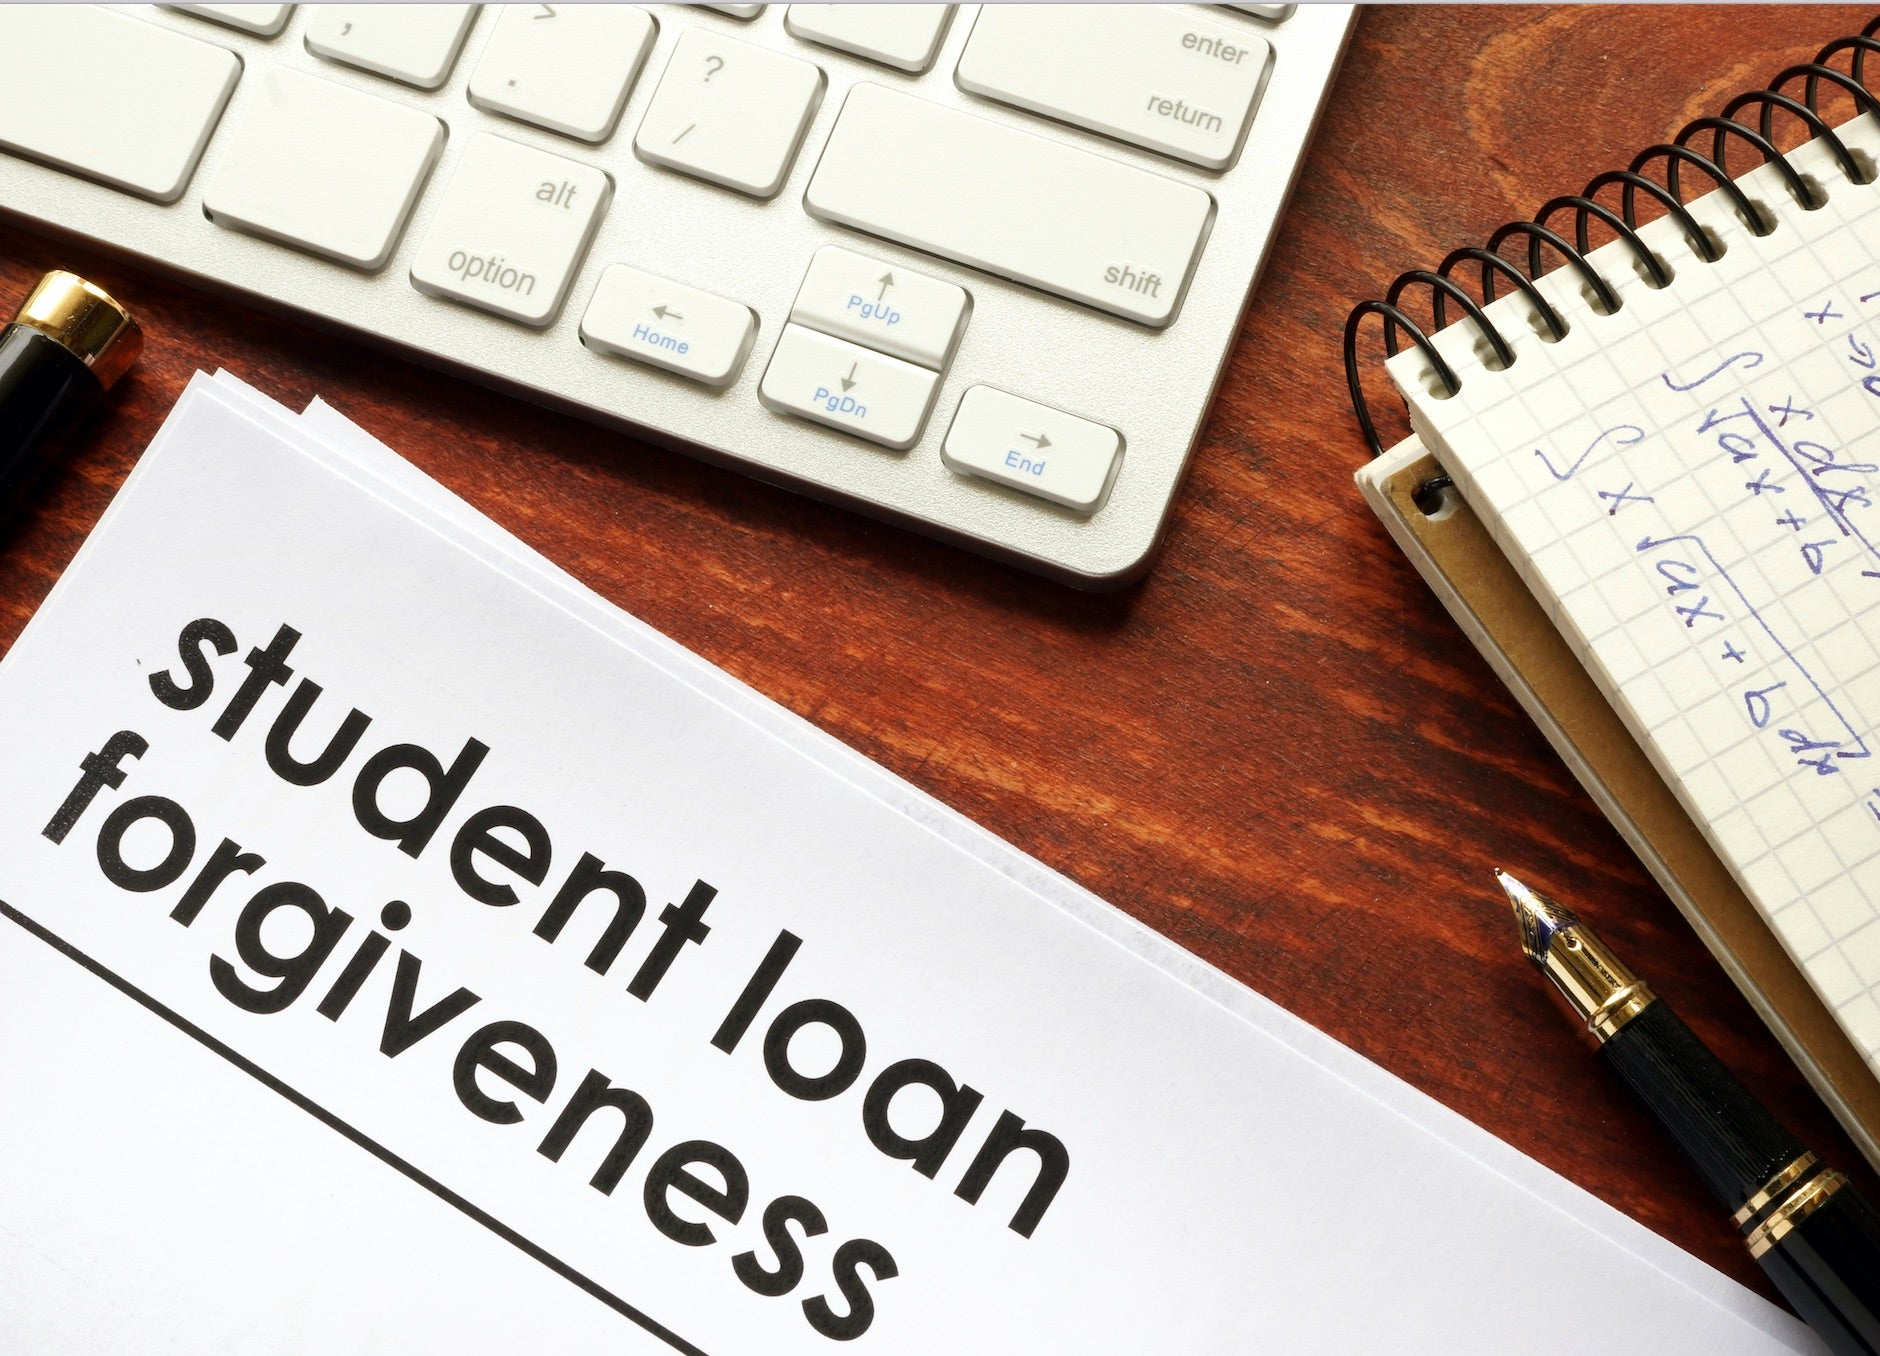 student loan debt should be forgiven essay Student debt is a form of debt that is owed by an attending, withdrawn, or graduated student to a lending institution the lending is often of a student loan, but debts may be owed to the school if the student has dropped classes and withdrawn from the school withdrawing from a school, especially if a low- or no-income student has withdrawn with a failing grade, could deprive the student of.